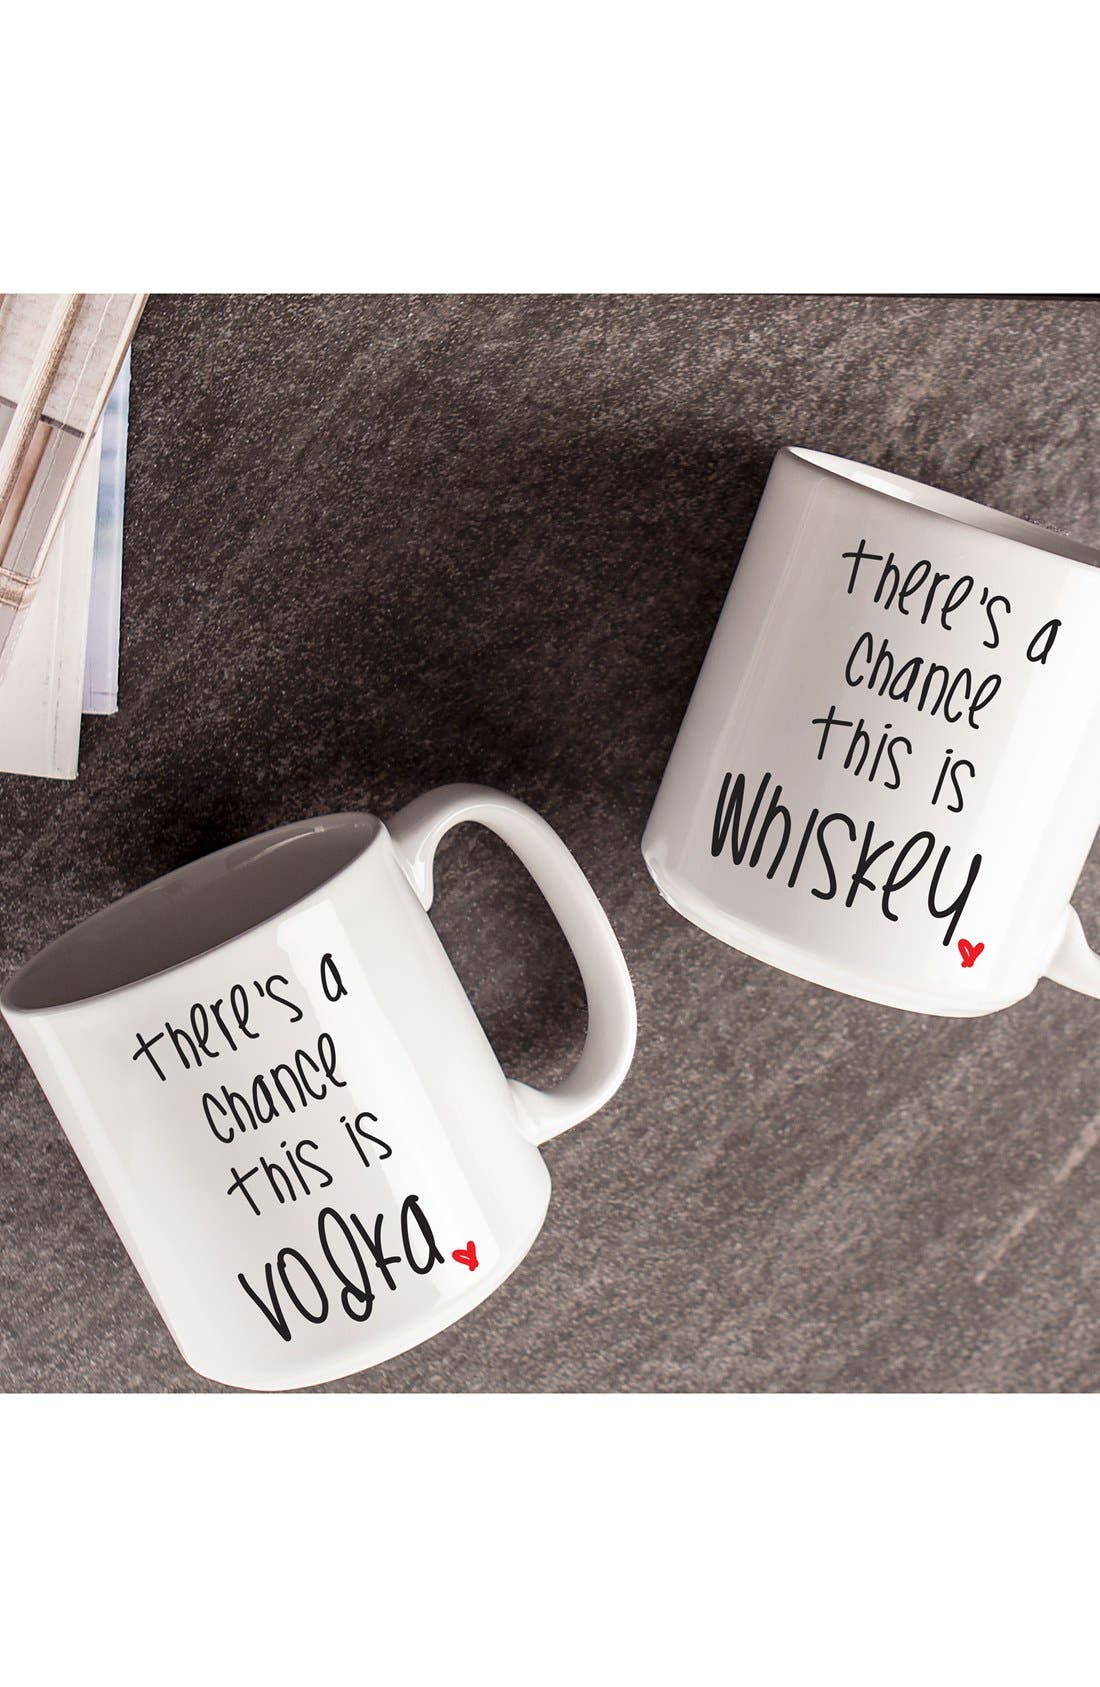 'There's a Chance' Ceramic Coffee Mugs,                             Alternate thumbnail 2, color,                             100